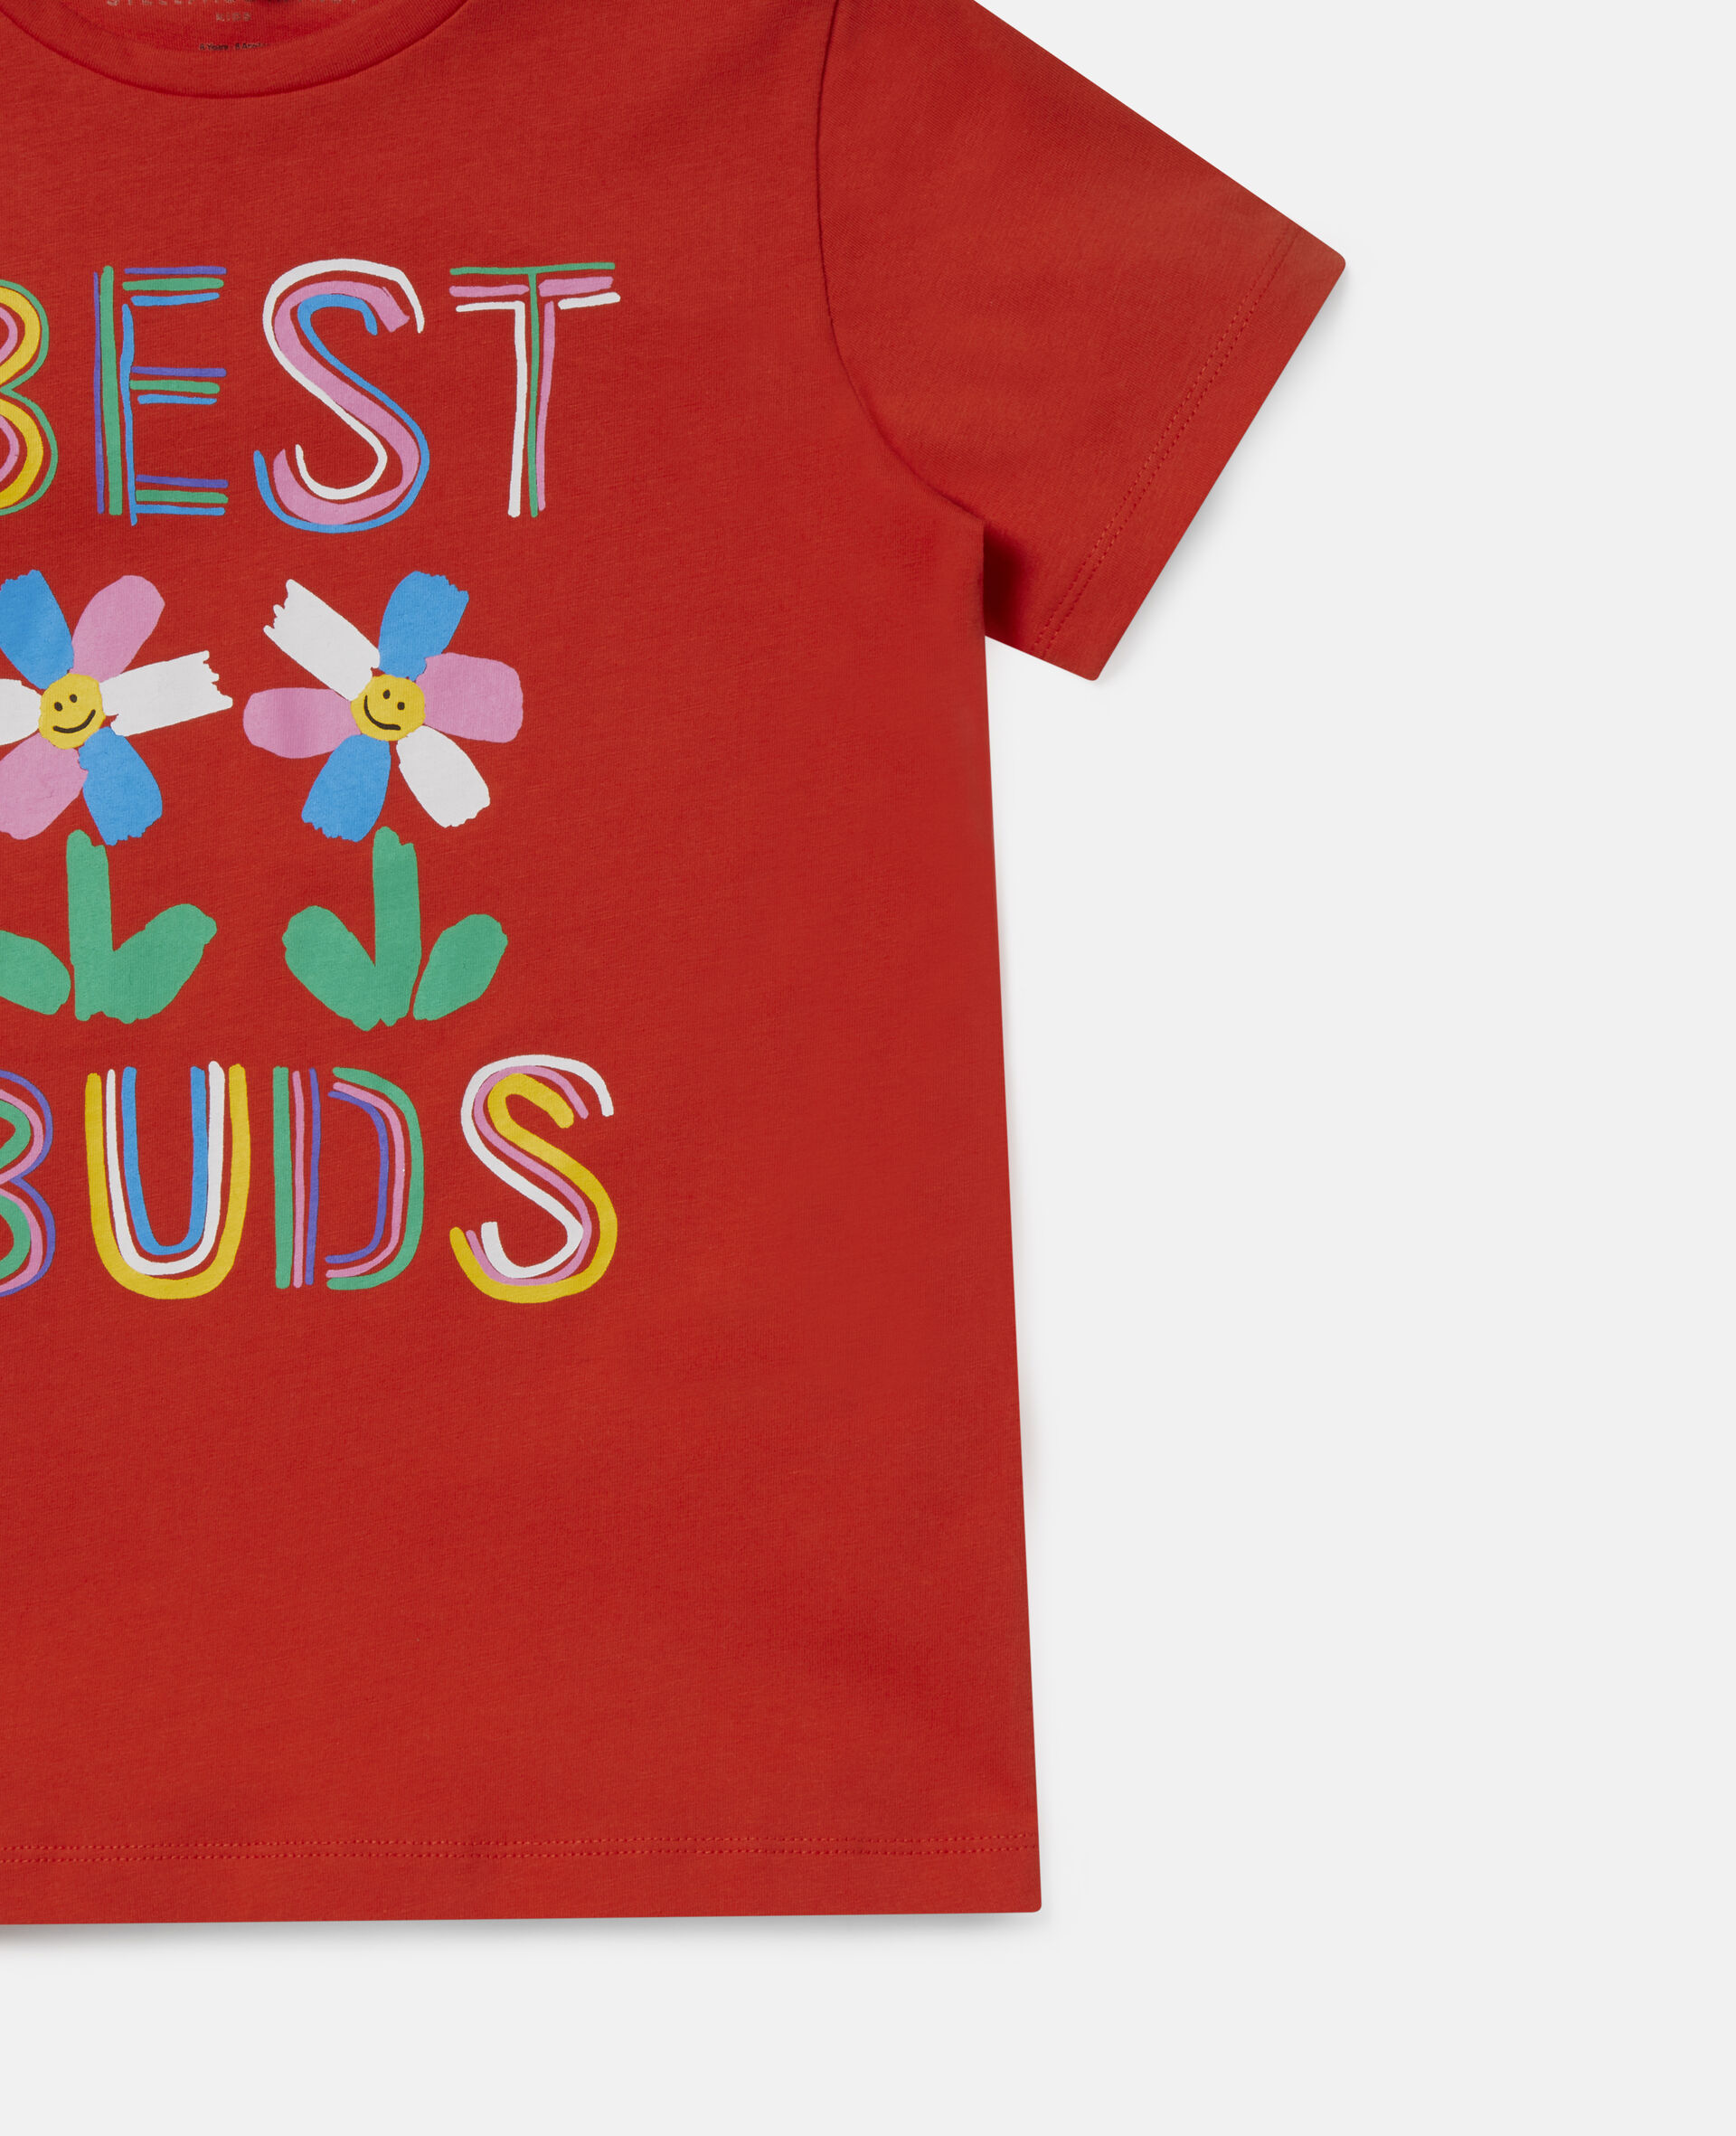 Best Buds' Cotton T-shirt-Red-large image number 1